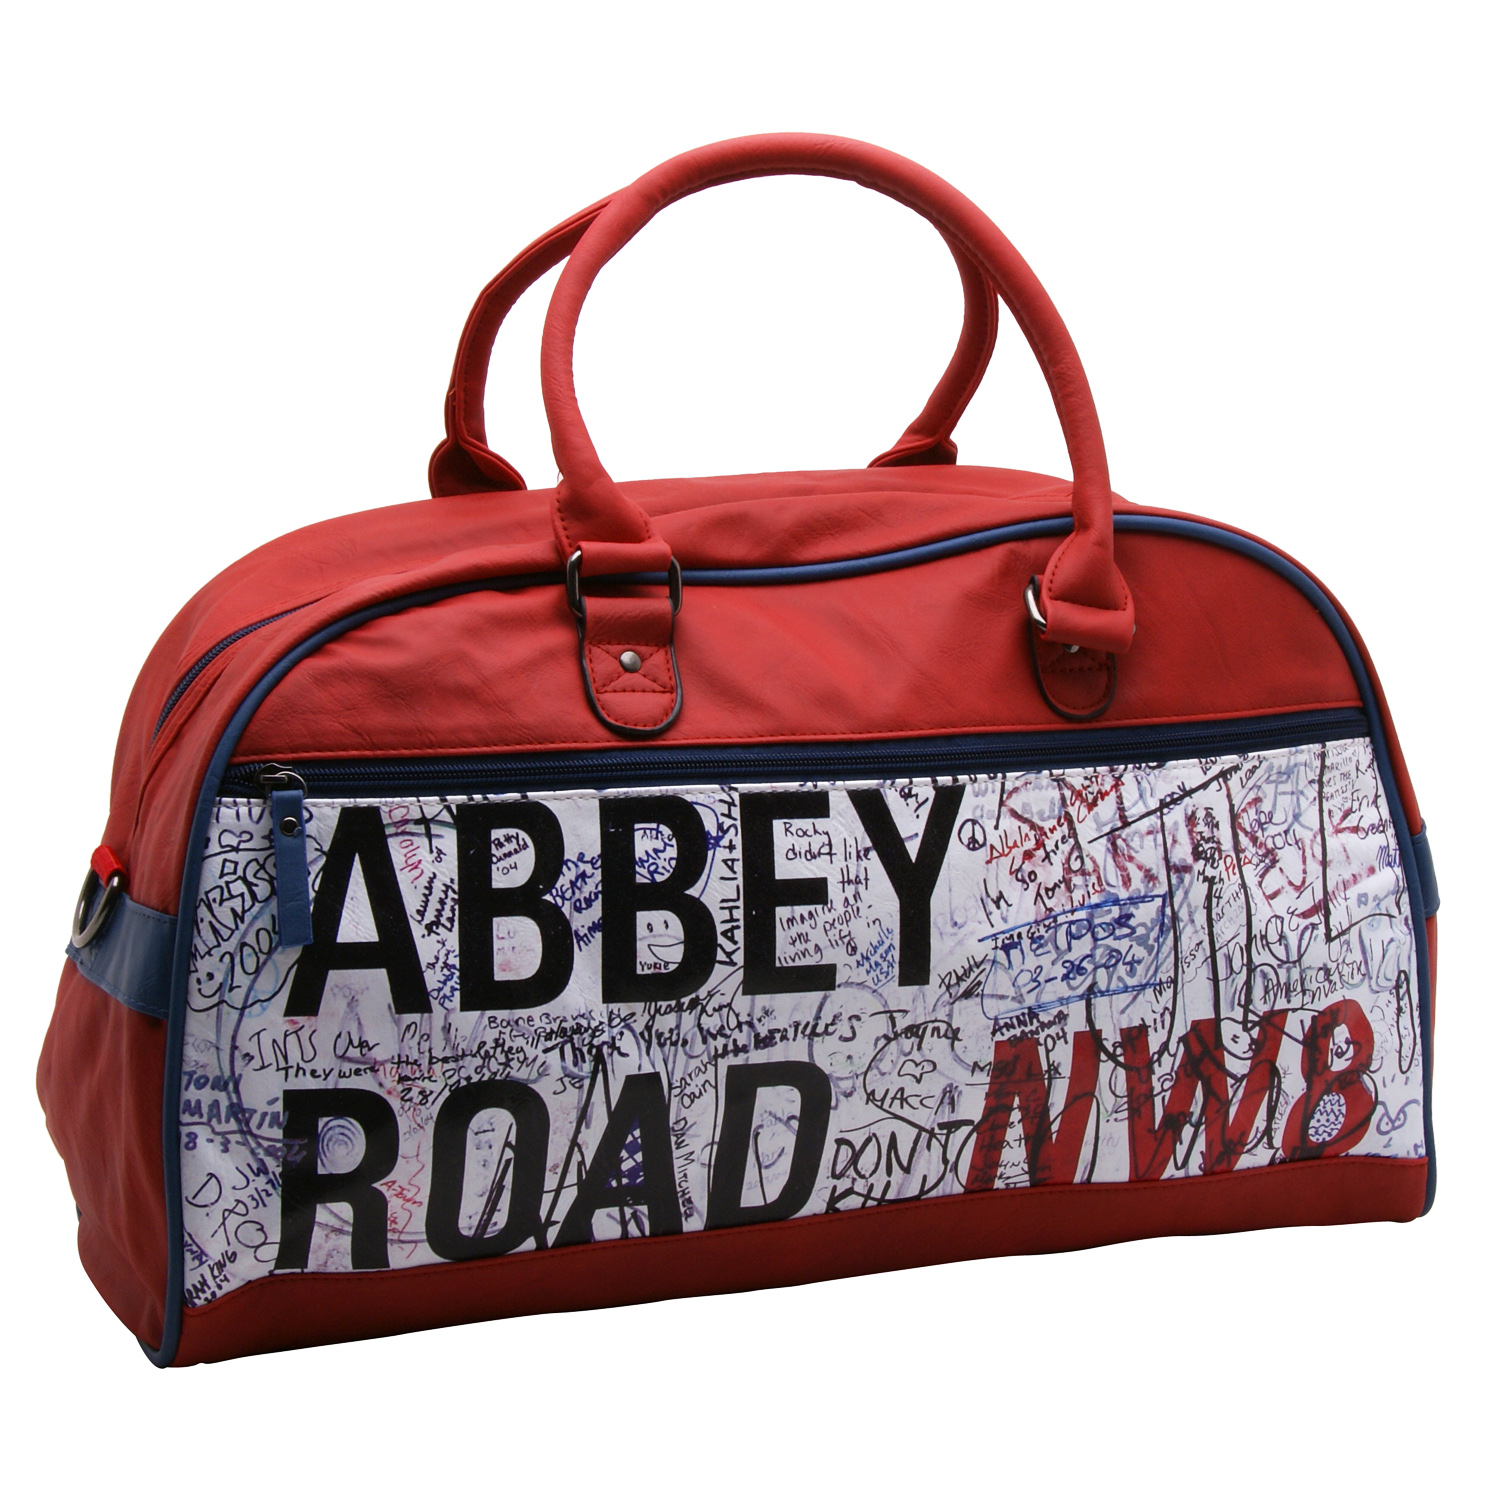 Plan B – Beatles Red Abbey Road Bowling Bag/Travel Holdall with Shoulder Strap